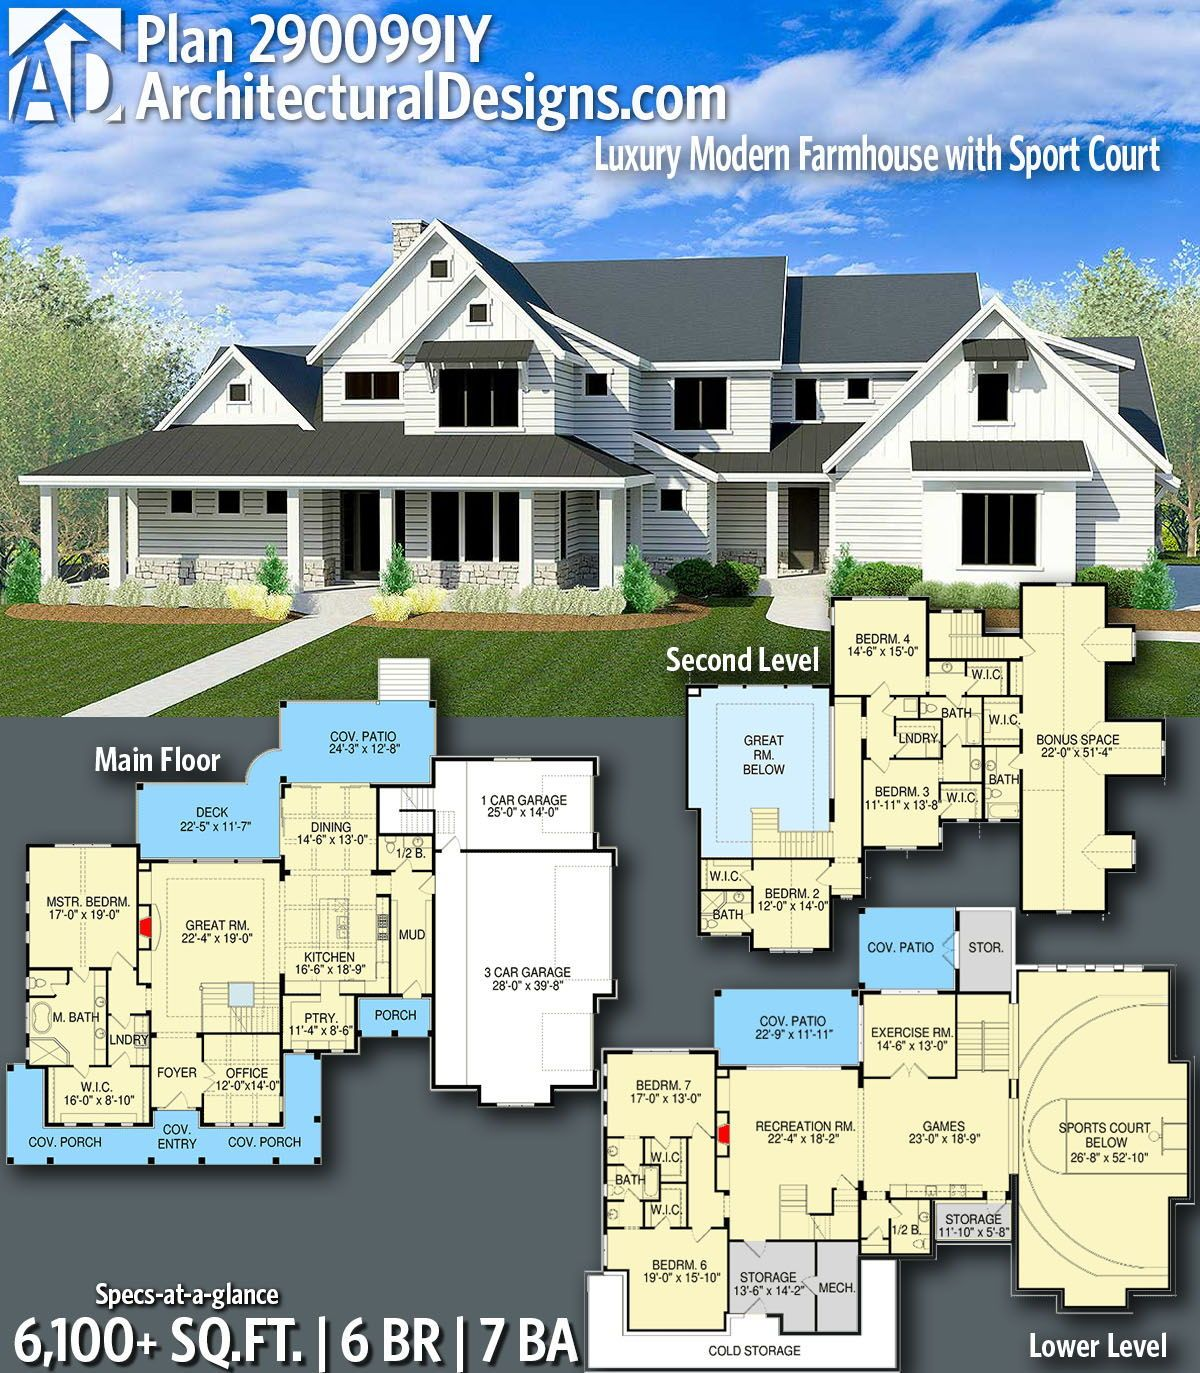 21 House Plans With Sport Courts Ideas House Plans Sport Court House